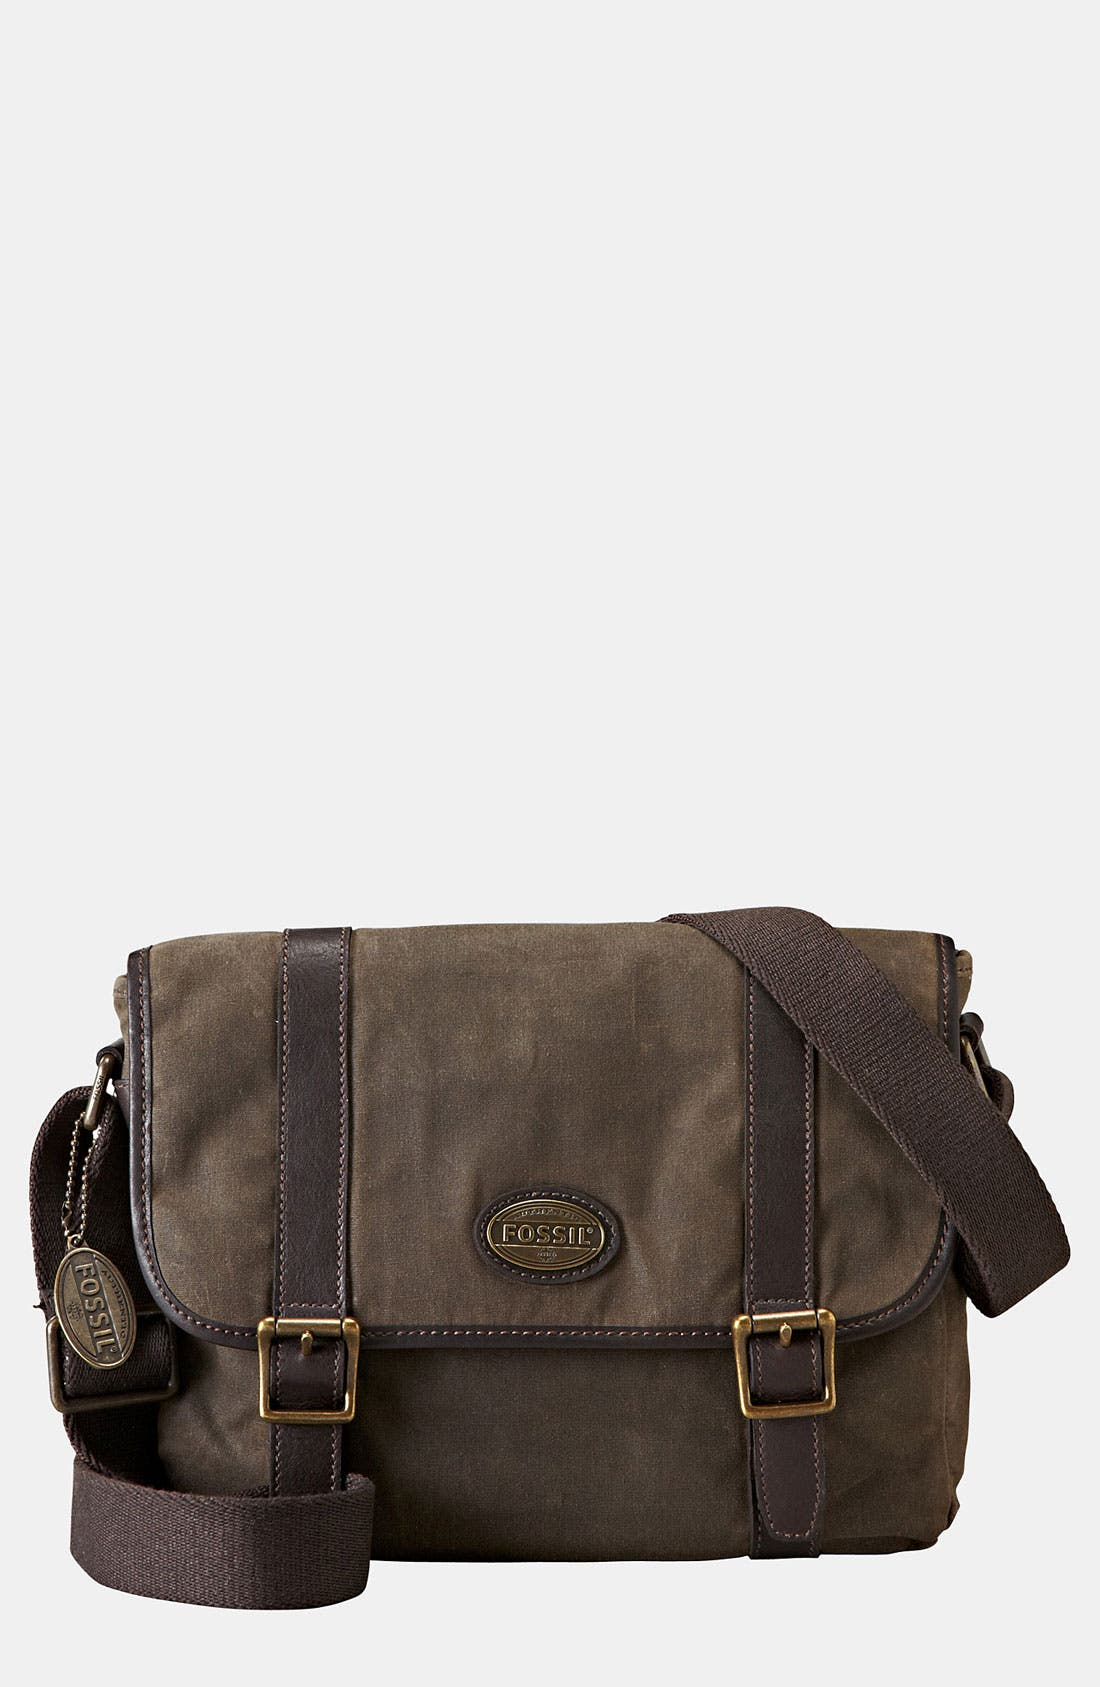 Alternate Image 1 Selected - Fossil 'Estate' City Bag